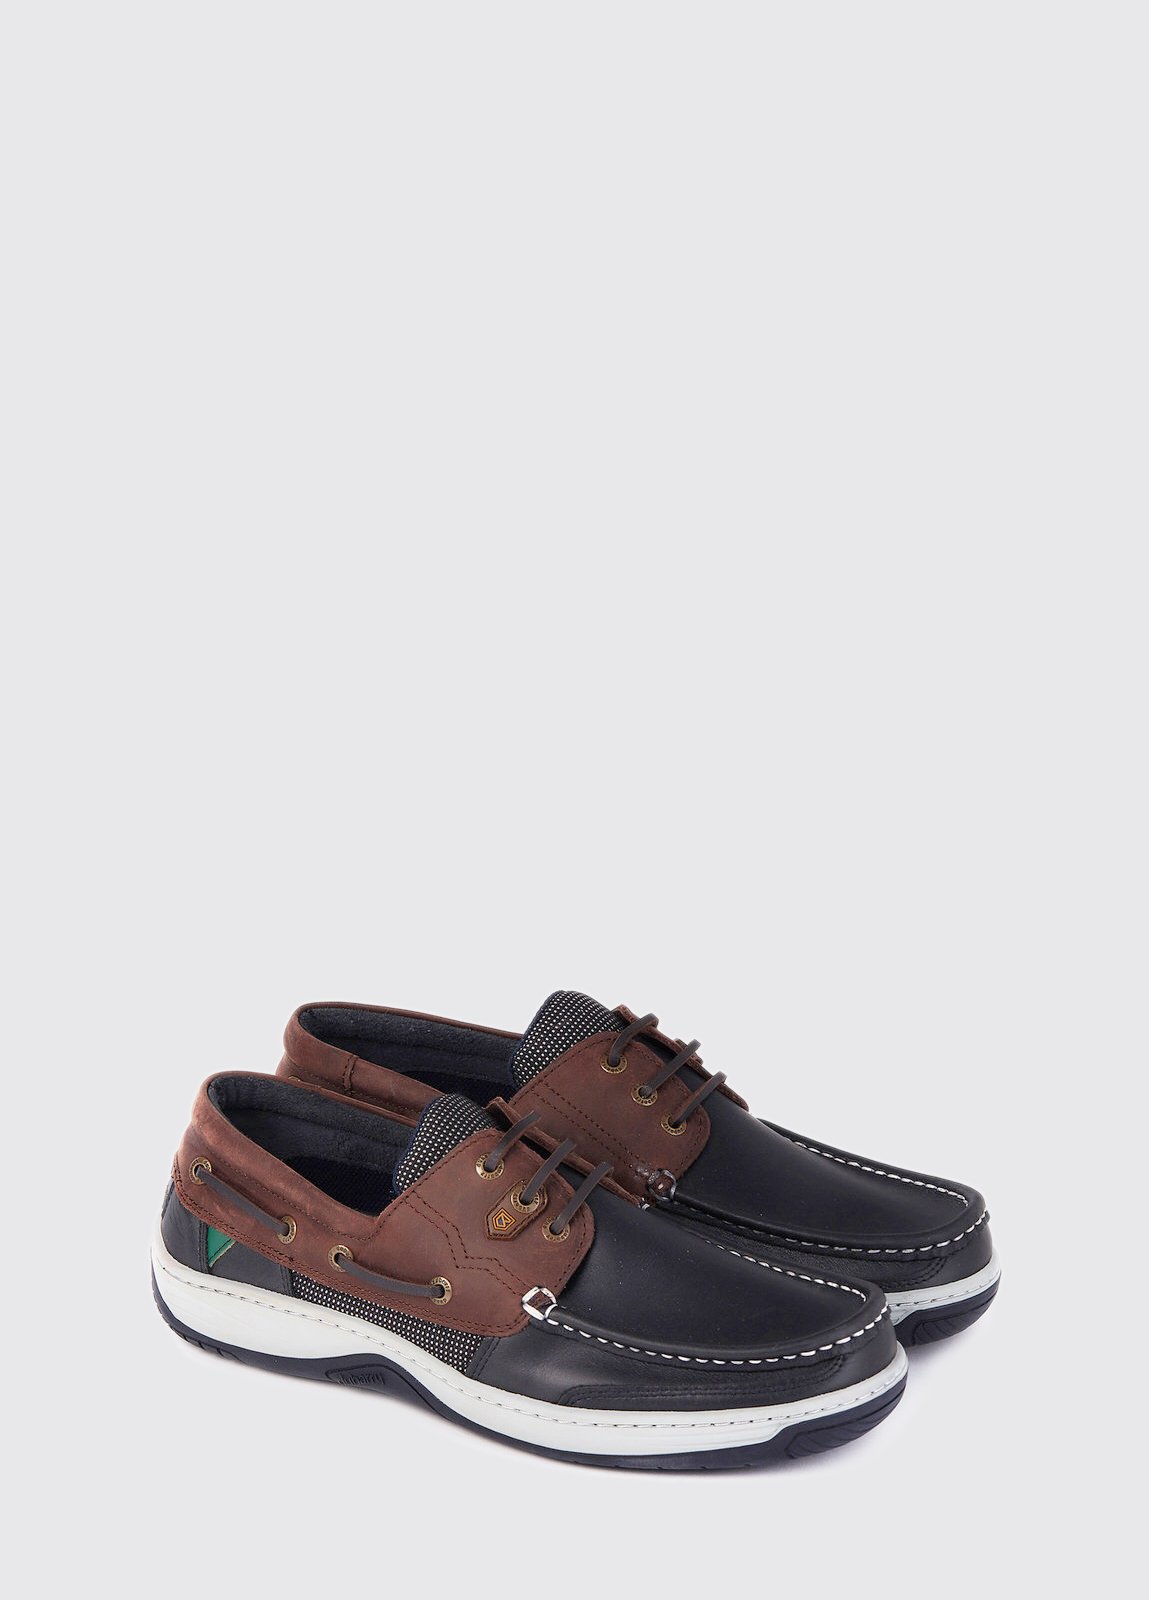 Regatta Deck Shoe - Navy/Brown